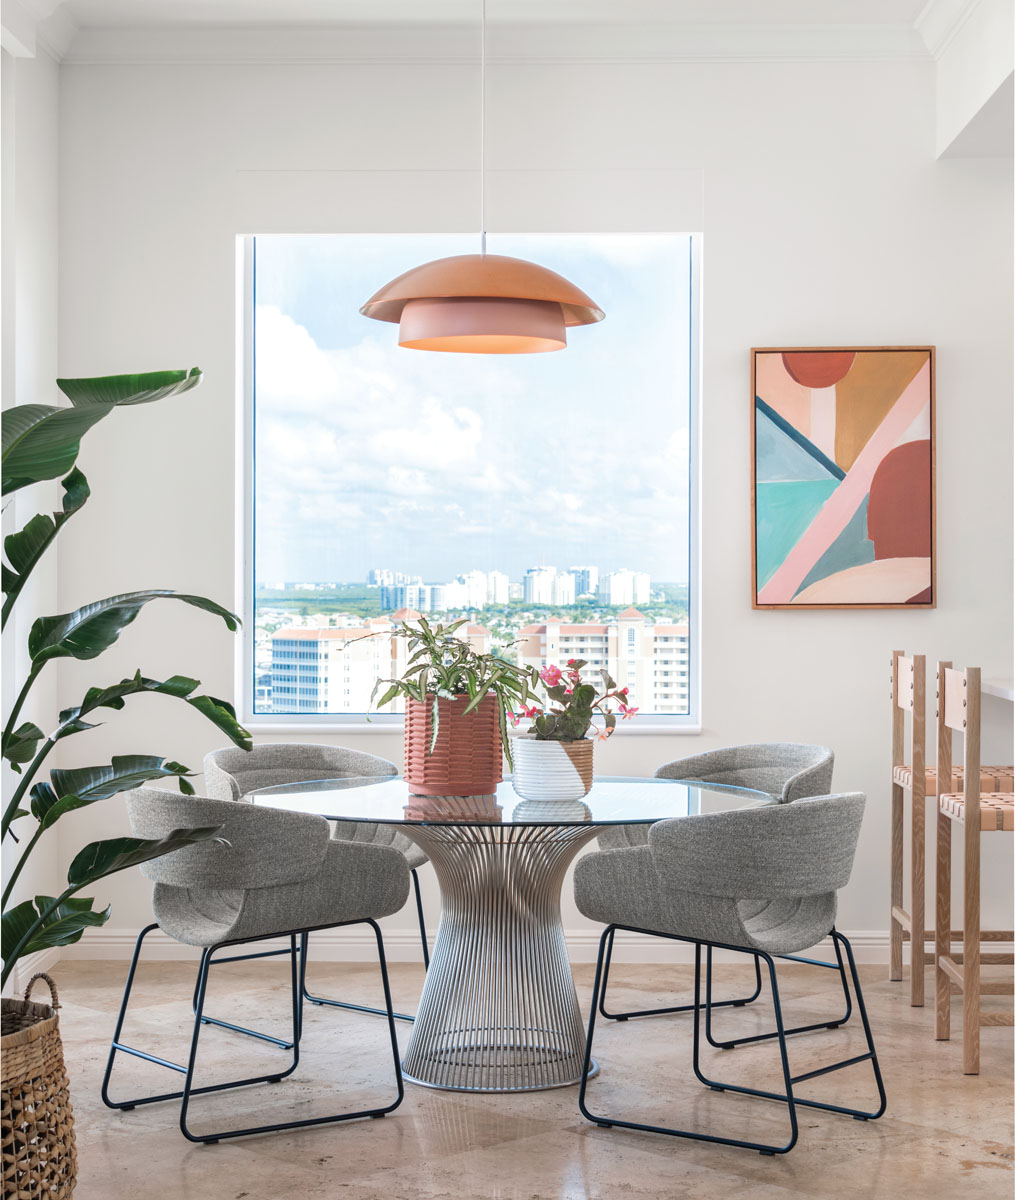 Picture-perfect, the breakfast nook captivates with Luminaire's whimsical pendant light that center's the space above Warren Platner's classic steel-based table with its fun and quirky take on casual dining.